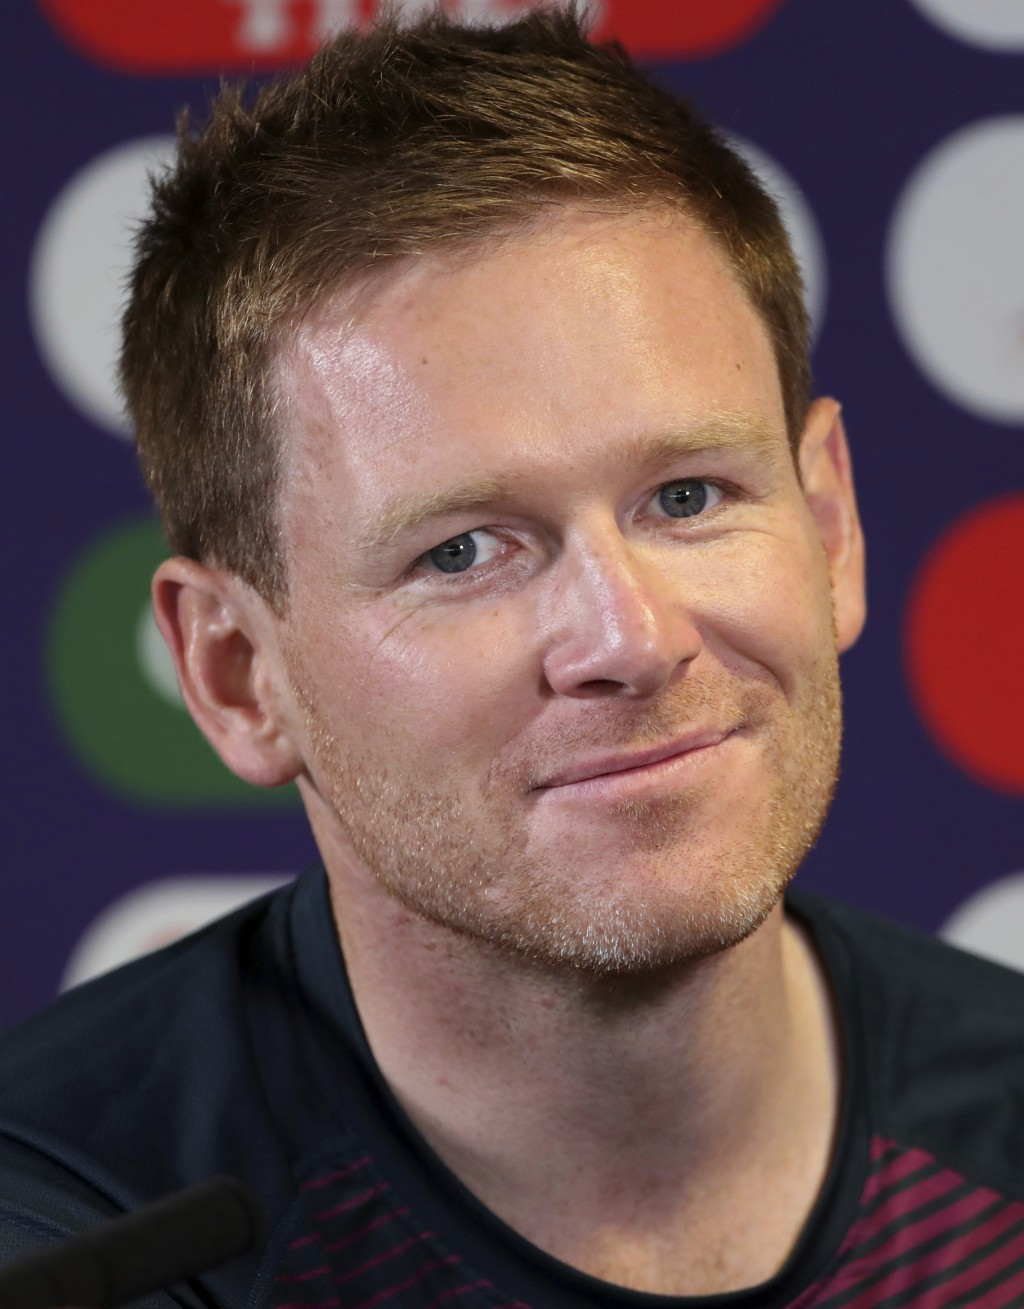 England's captain Eoin Morgan listens to a question from a journalist during a press conference ahead of their Cricket World Cup match against India a...